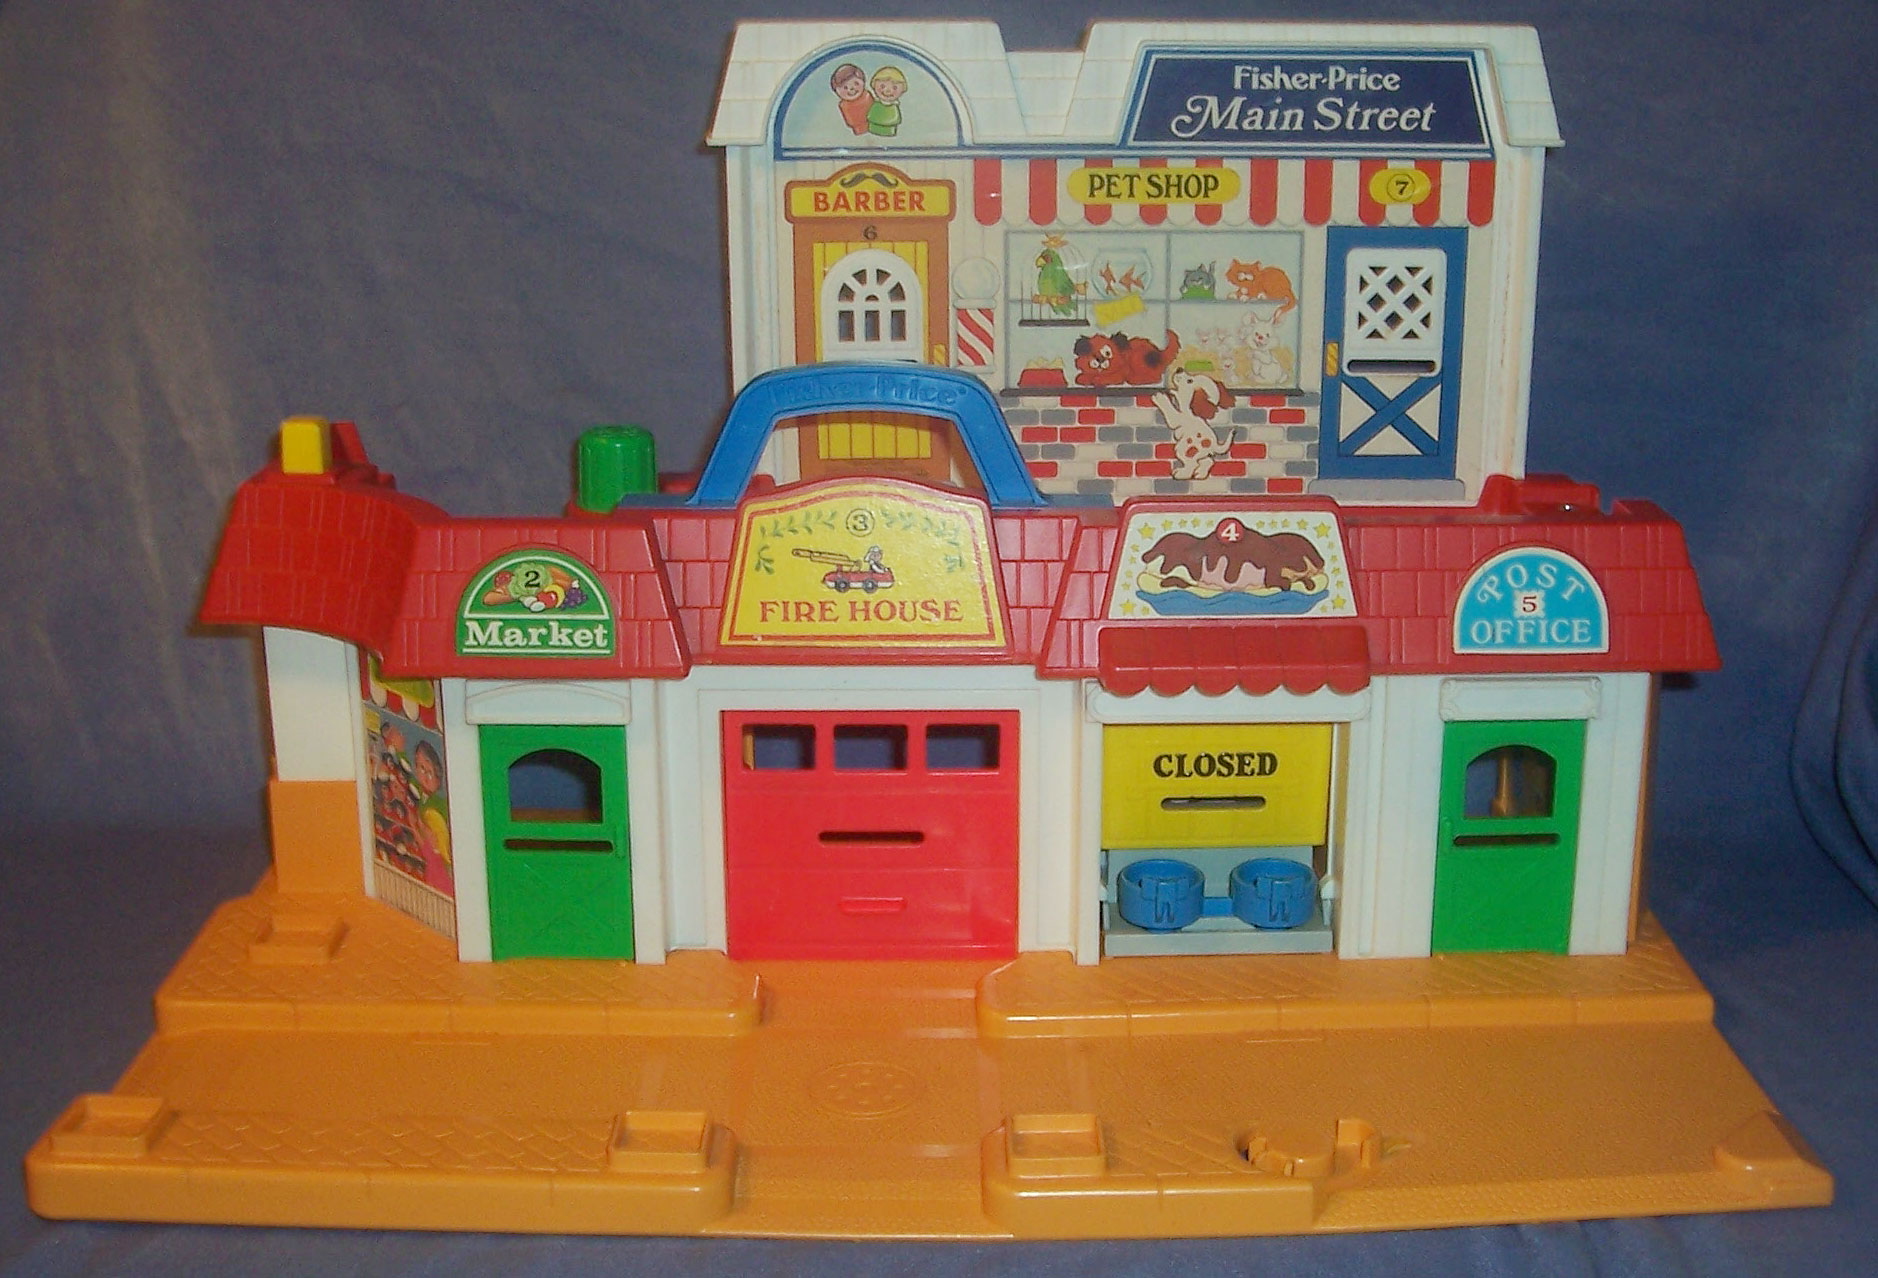 This Old Toy S Fisher Price Original Little People Bases